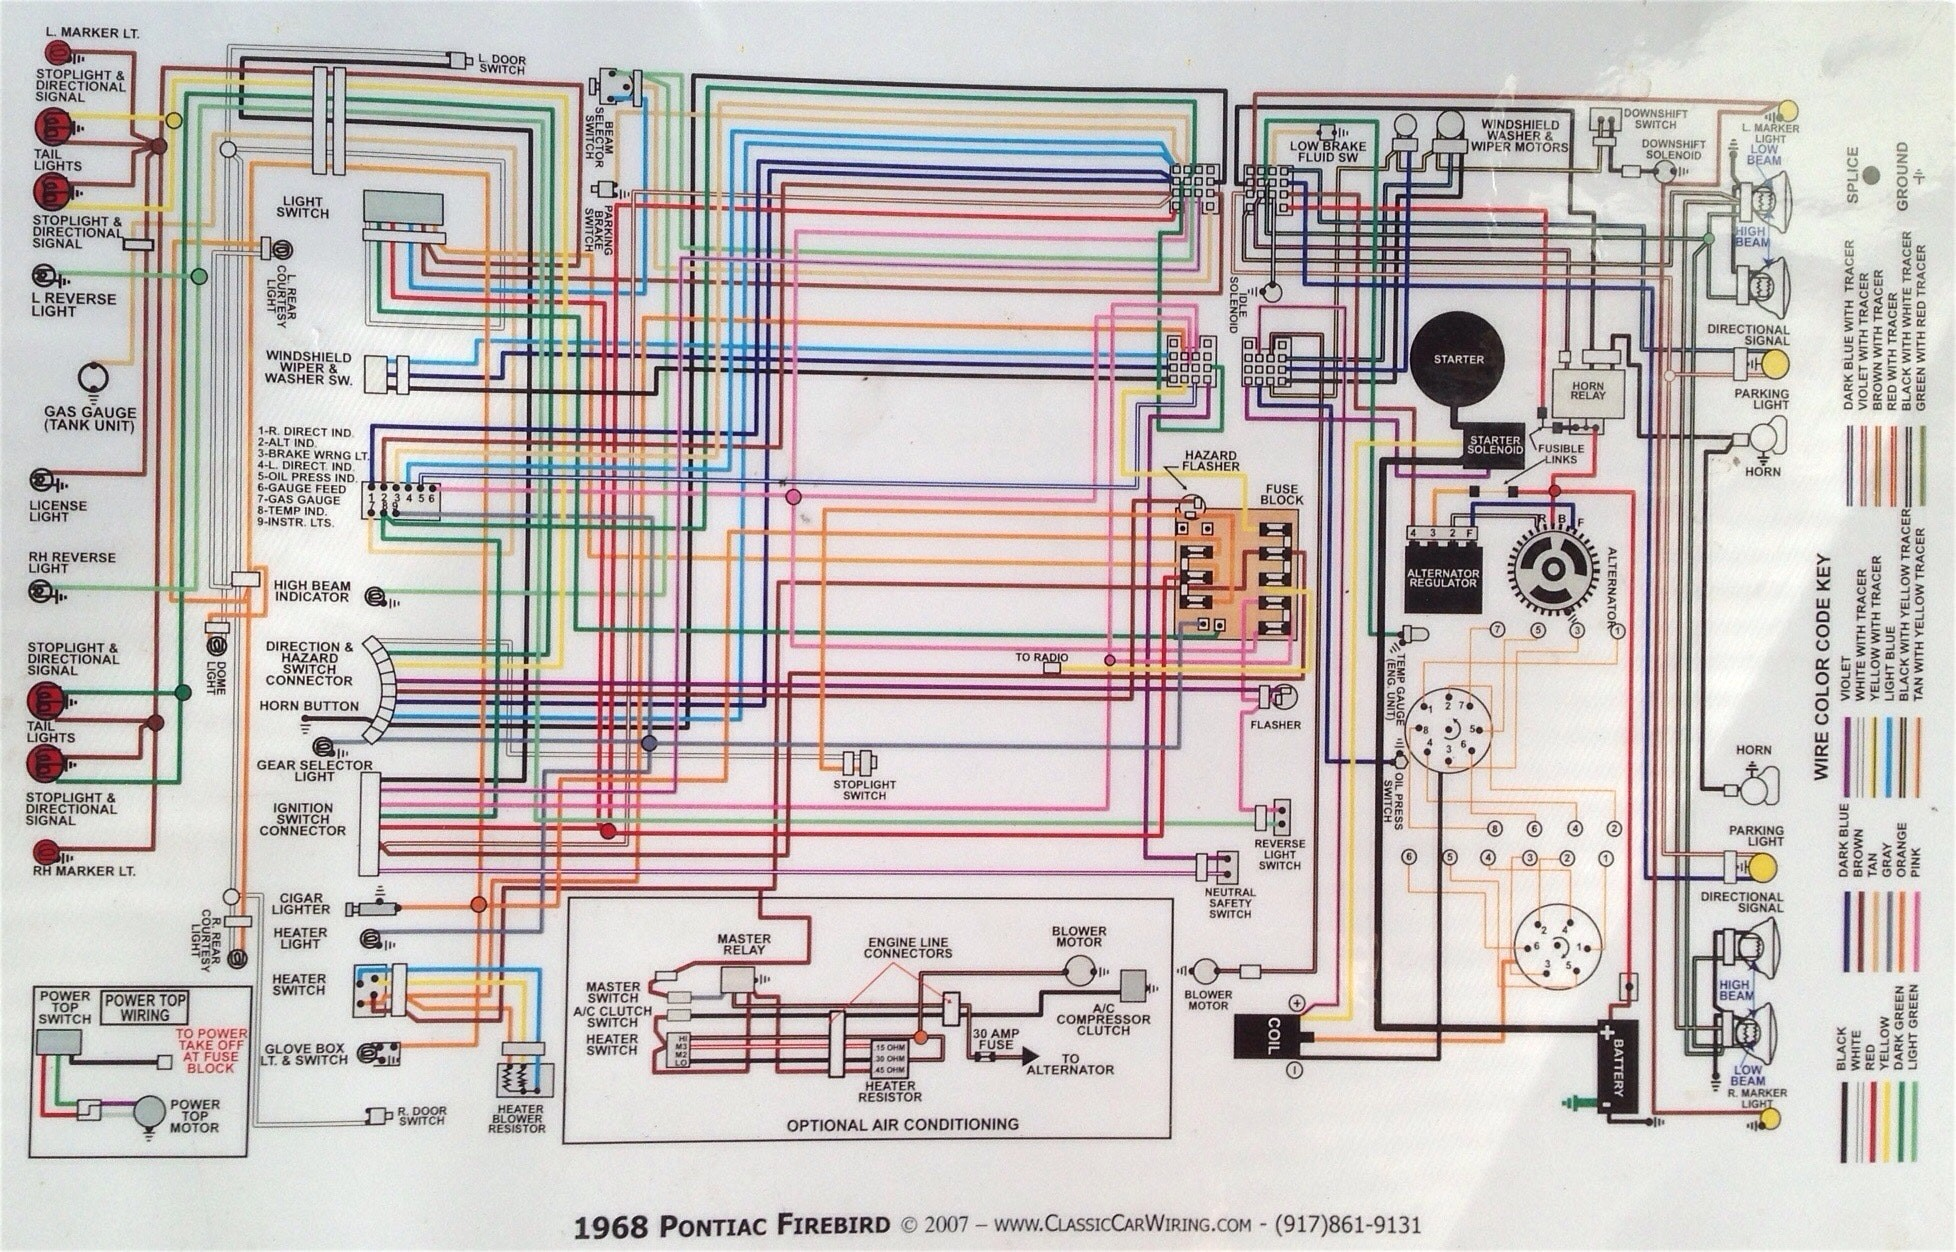 1968 camaro wiring diagram pdf - wiring diagrams auto found-a -  found-a.moskitofree.it  moskitofree.it